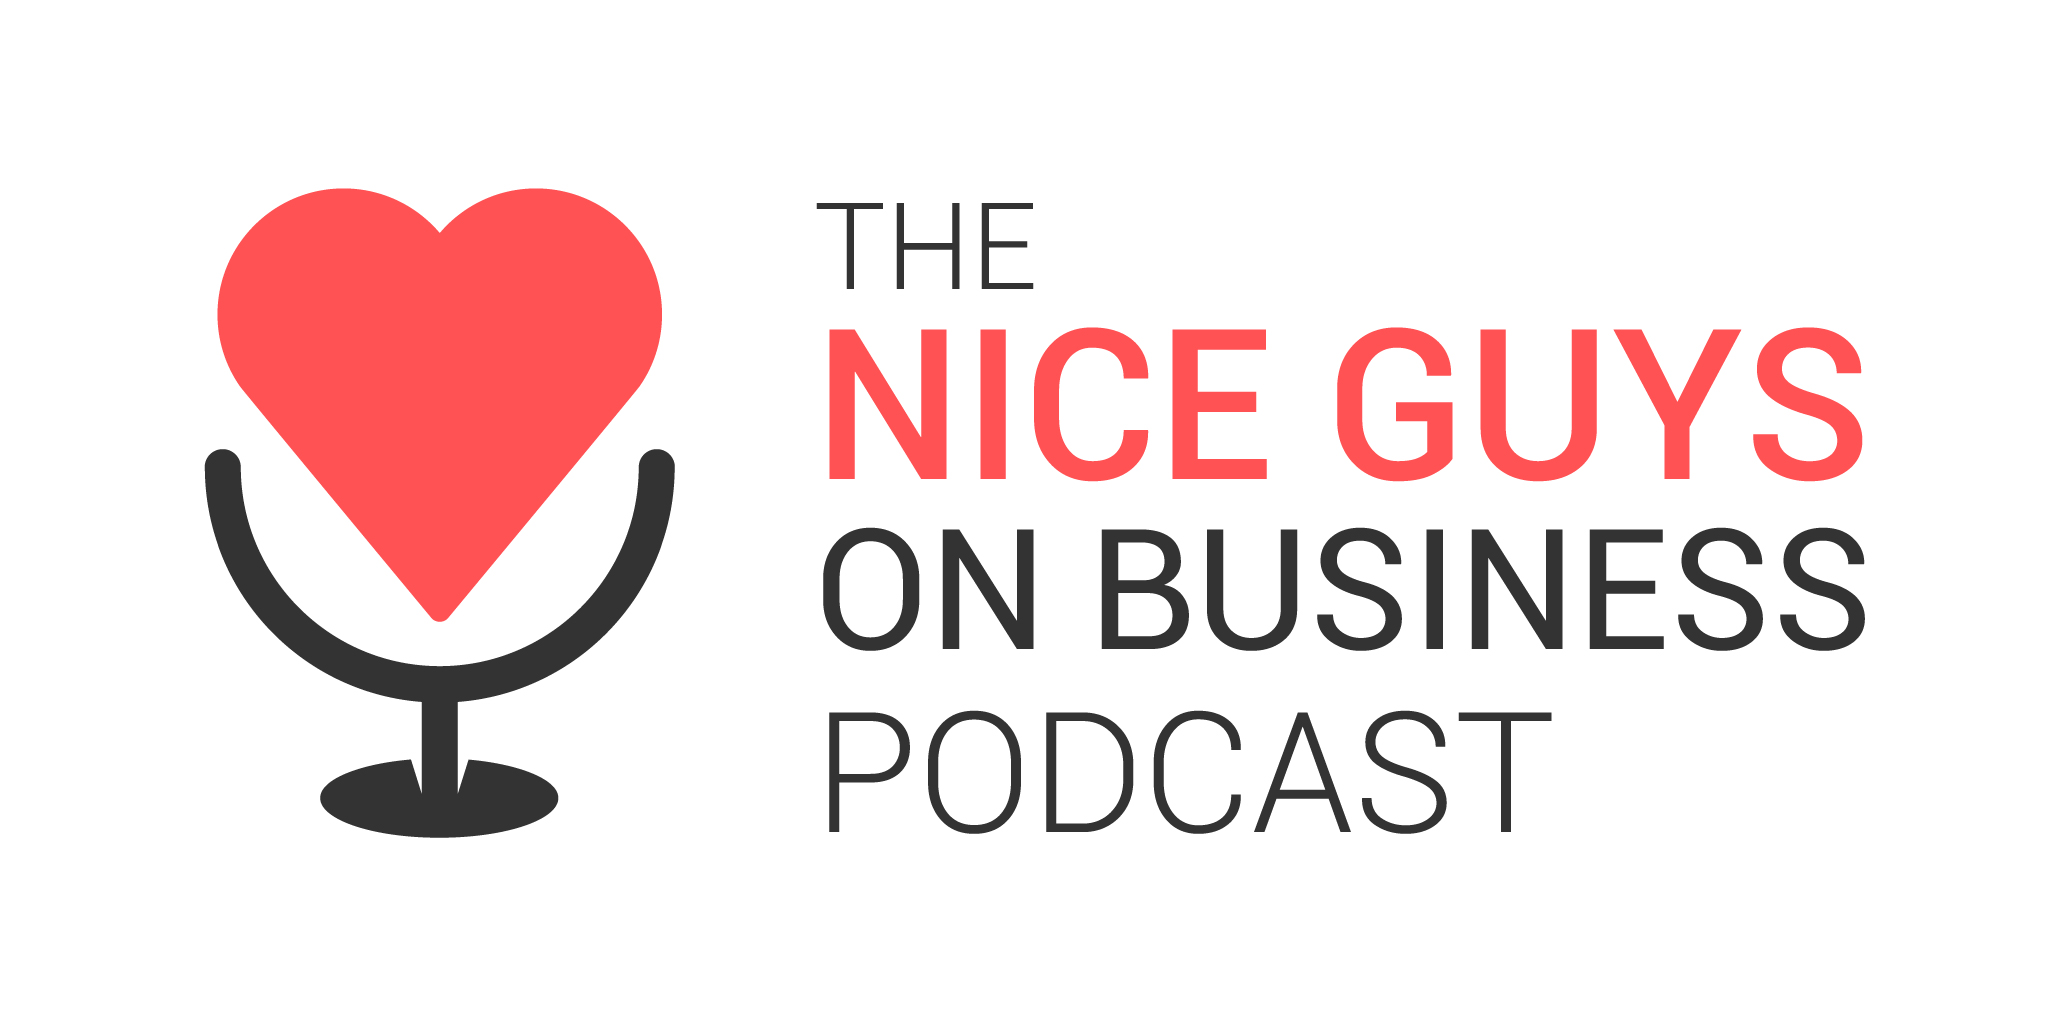 For more insights, check out The Nice Guys on Business Podcast